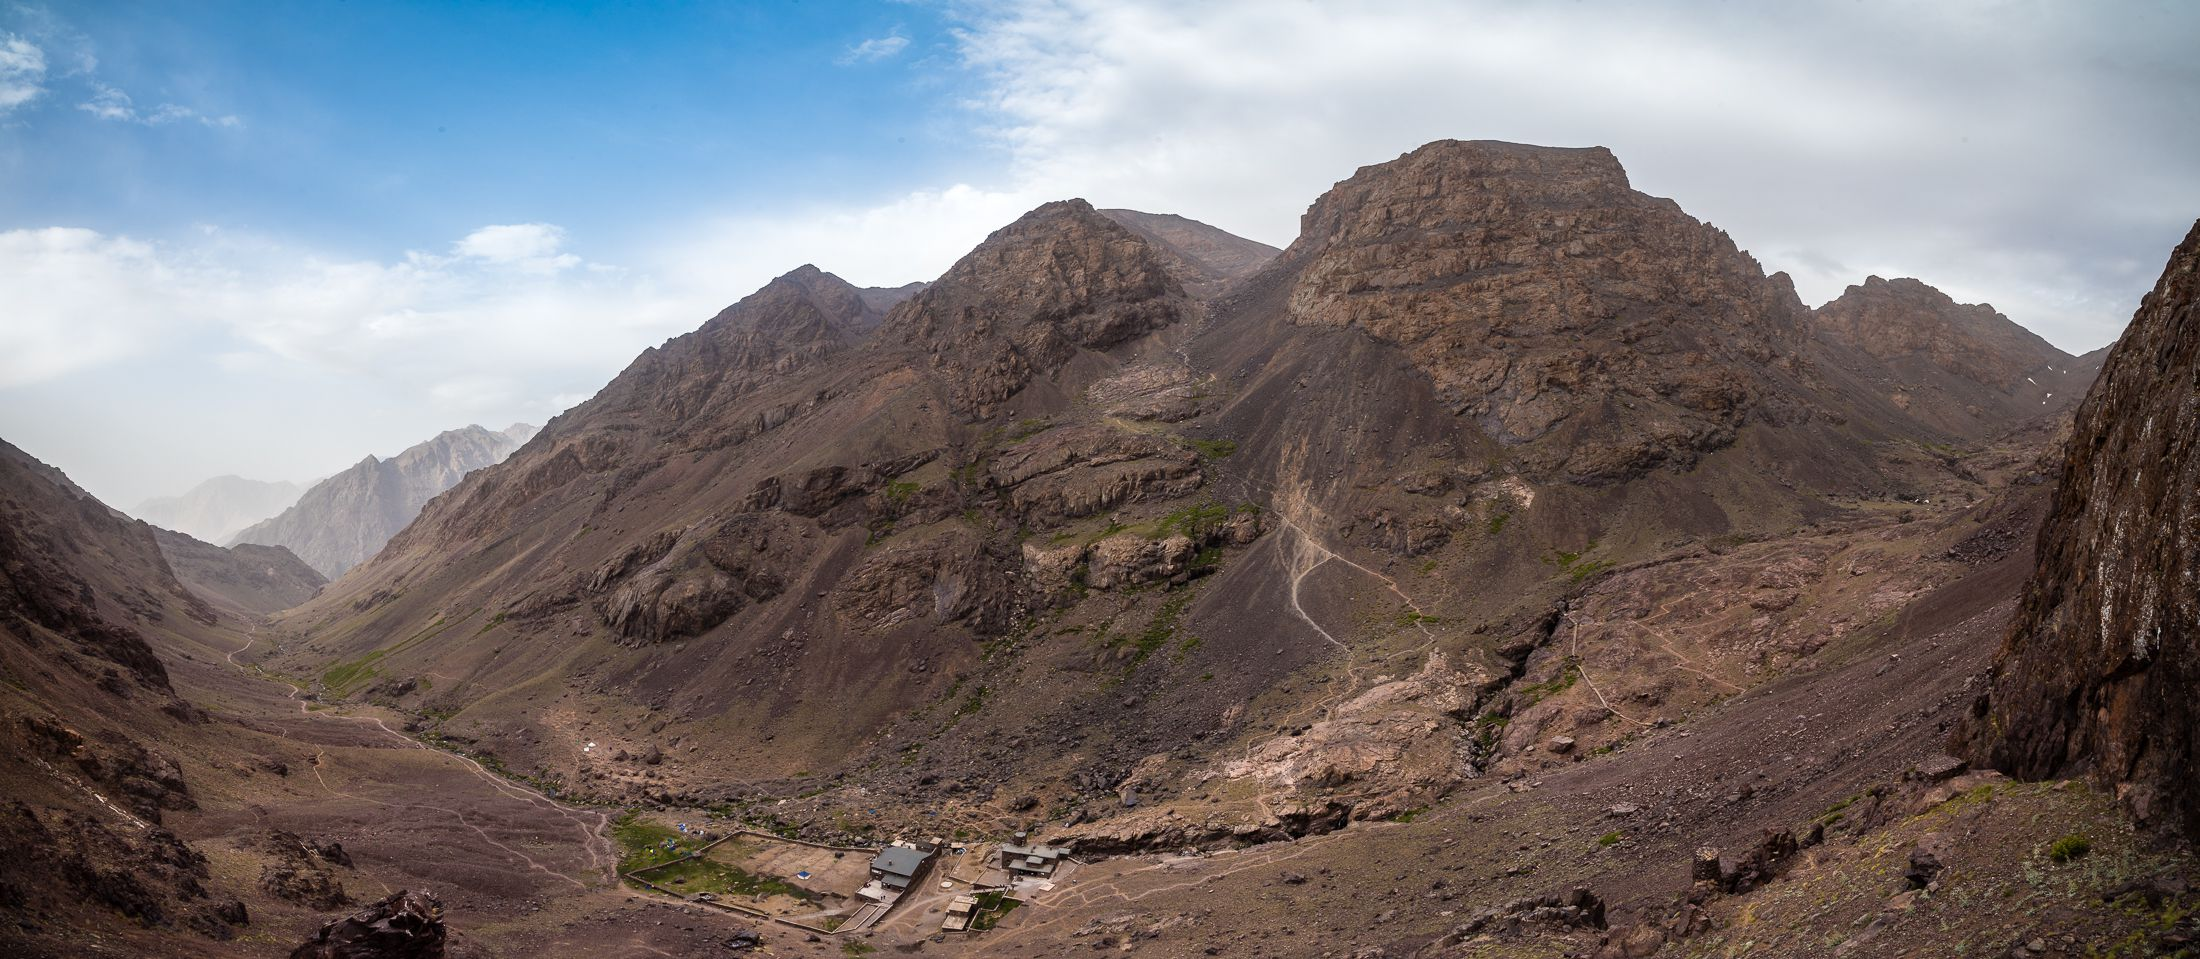 The way to Djebel Toubkal - Morocco